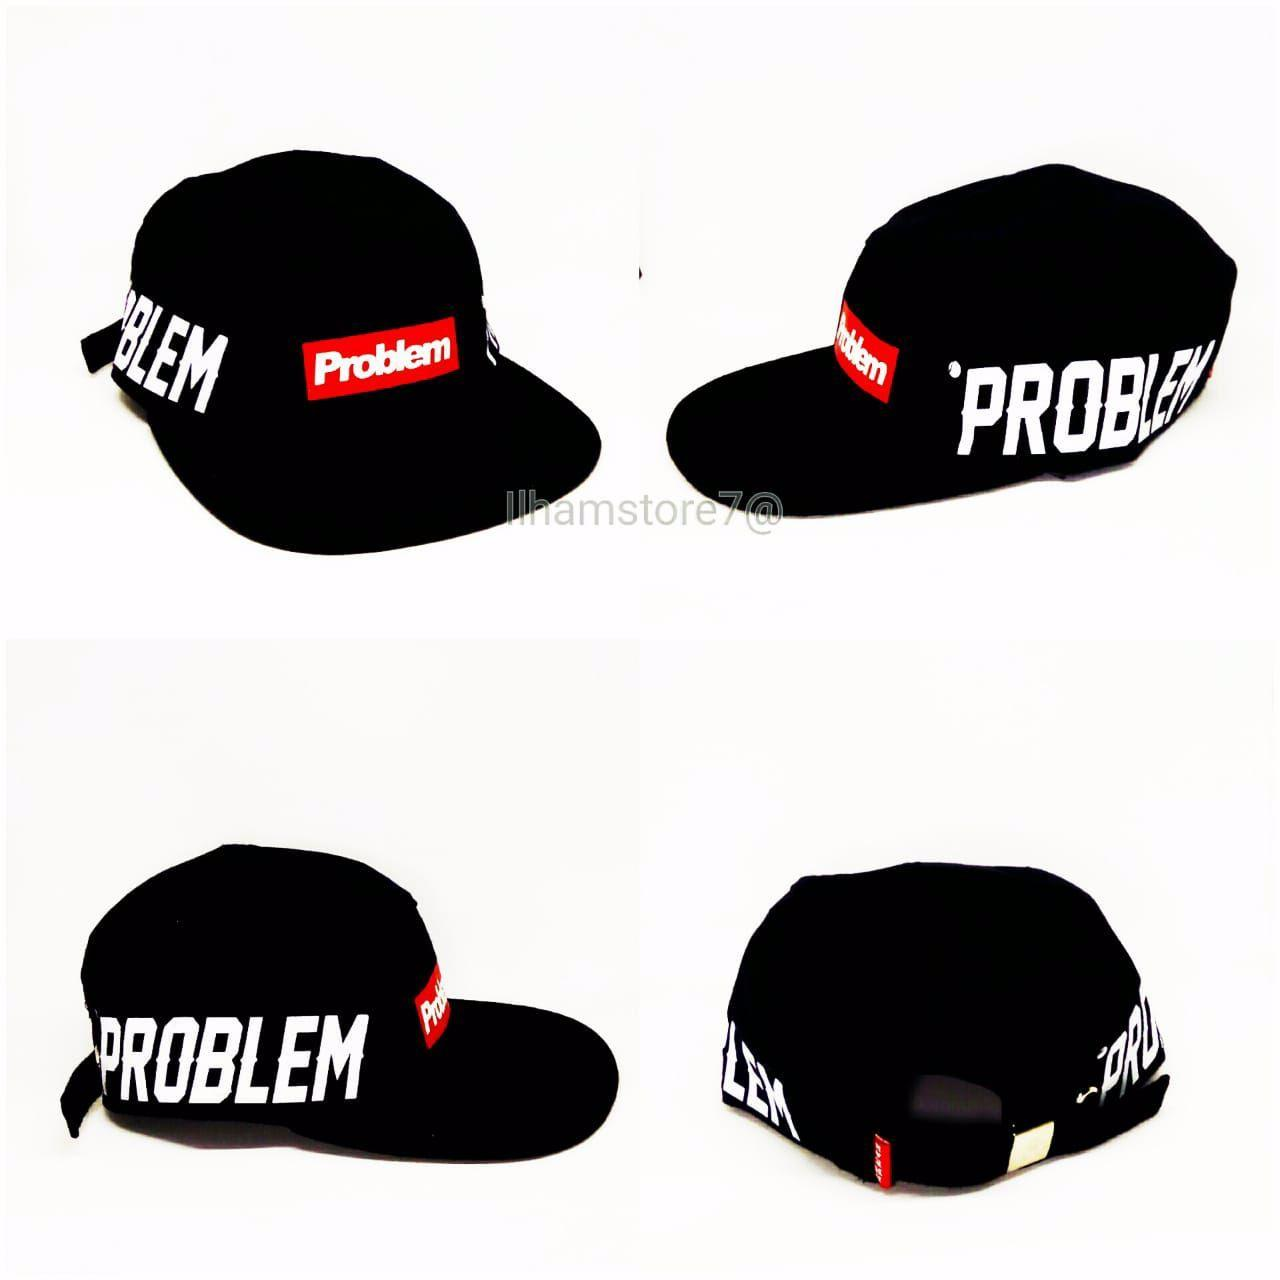 Topi distro pria topi snapback Rappel premium new model style fashion and  modis Topi 6b1959b769